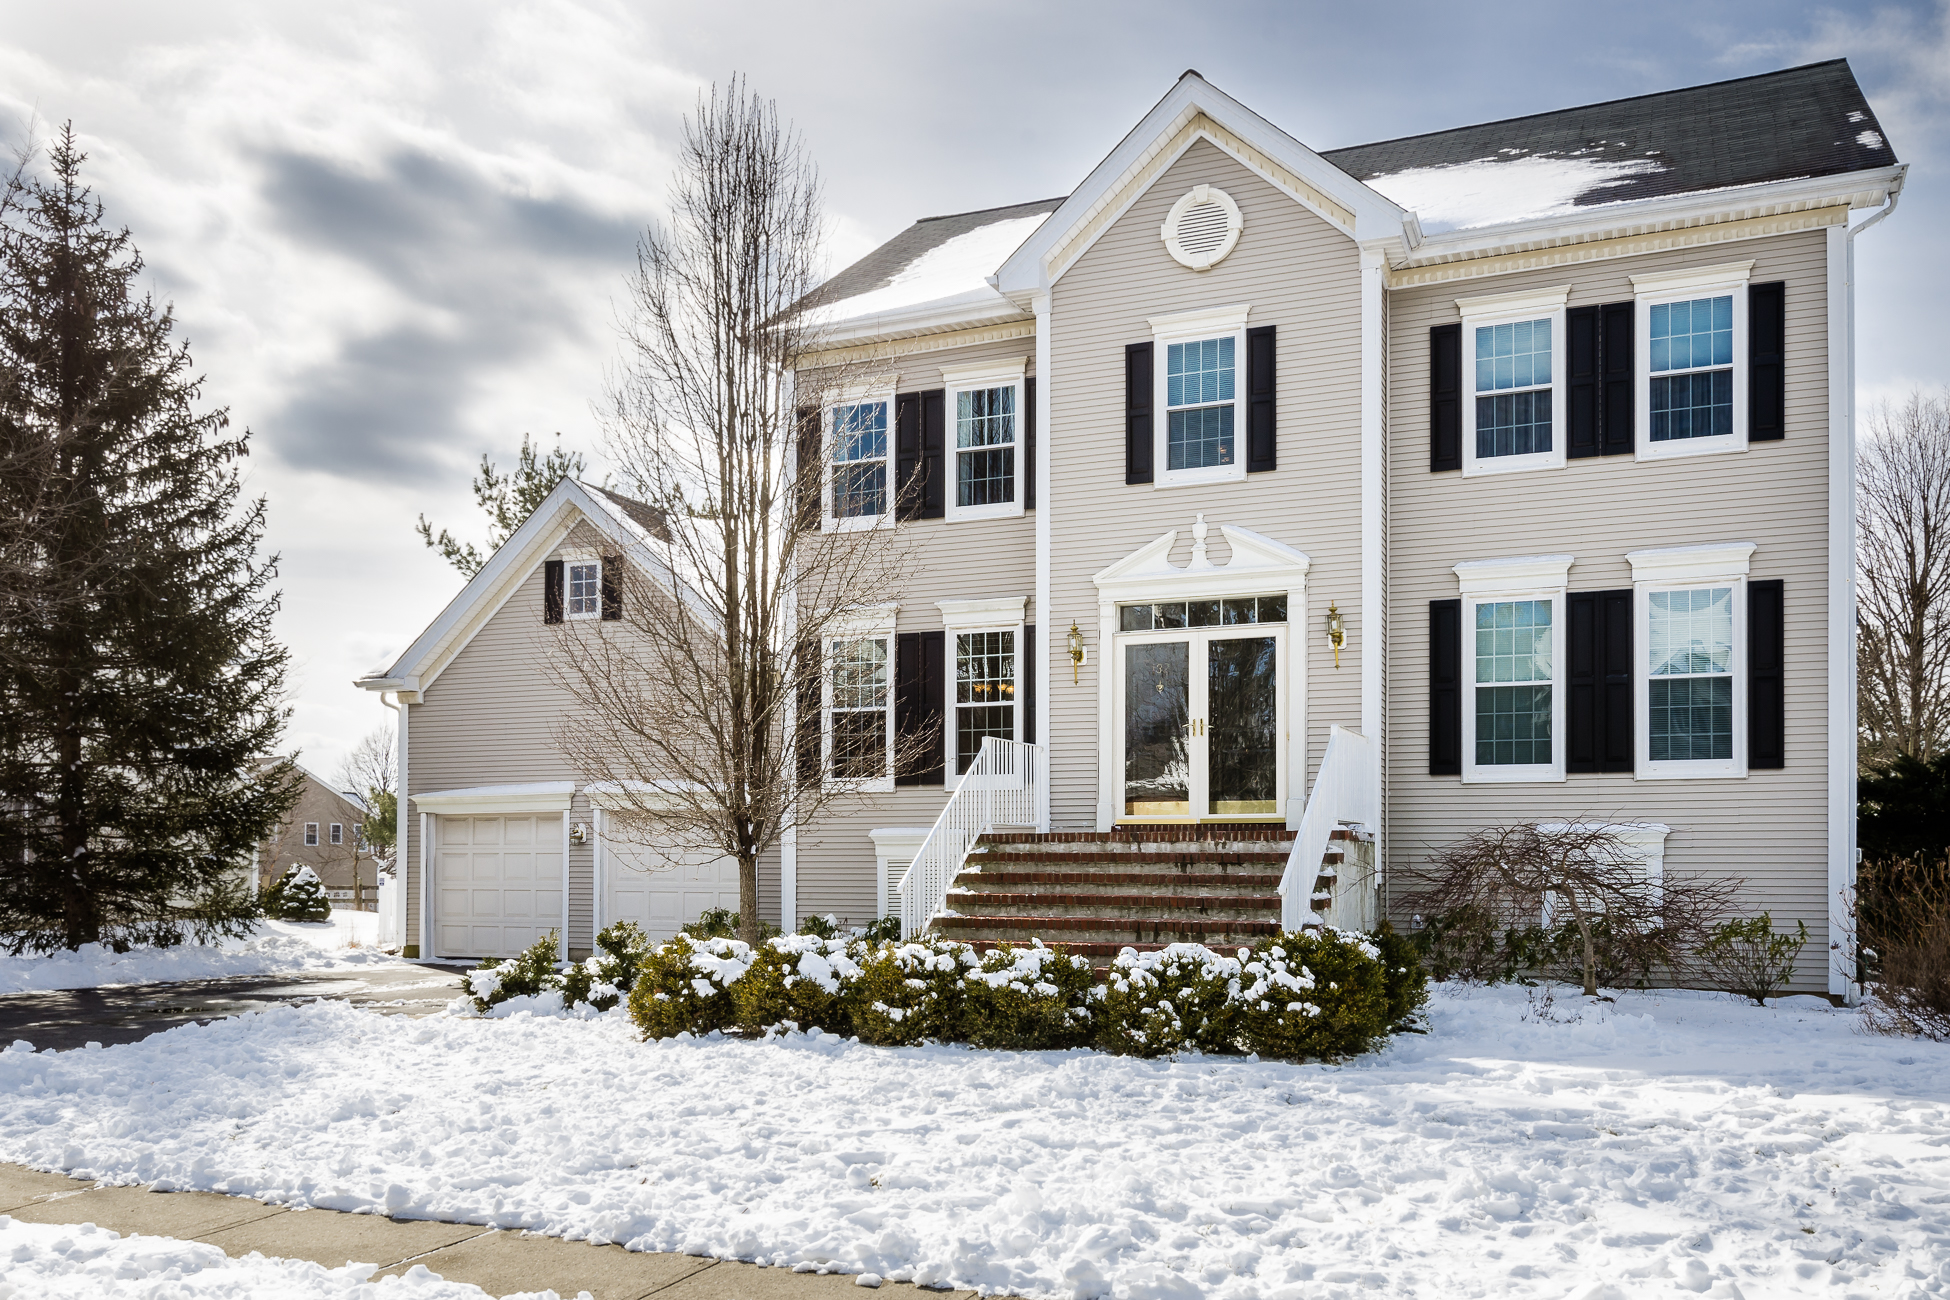 Single Family Home for Sale at Right At Home In Brandon Farms - Hopewell Township 132 Brandon Road Pennington, New Jersey 08534 United States